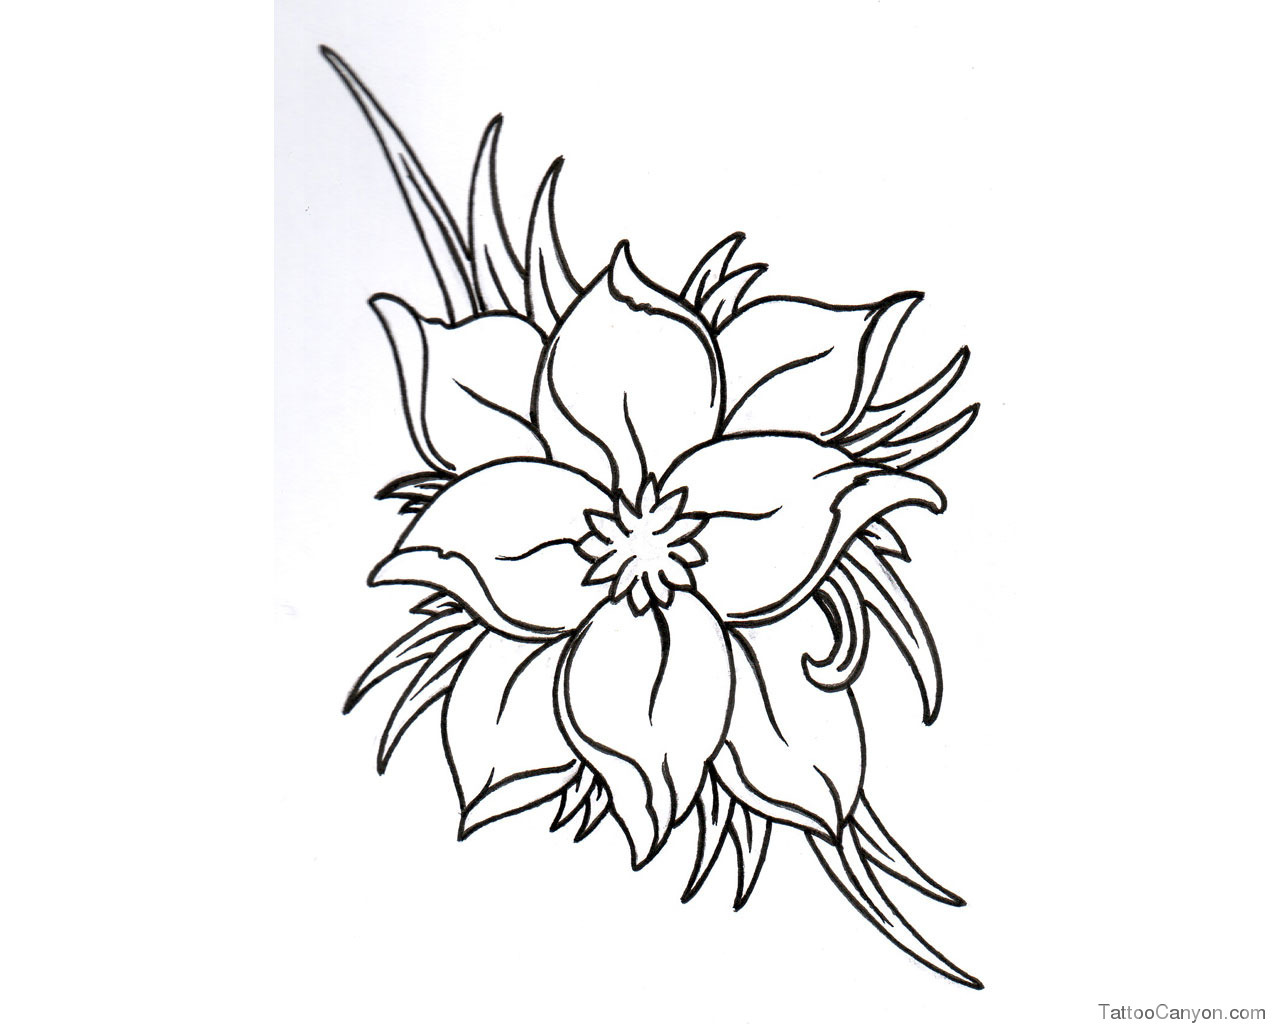 Black And White Flower Tattoo Designs - Cliparts.co